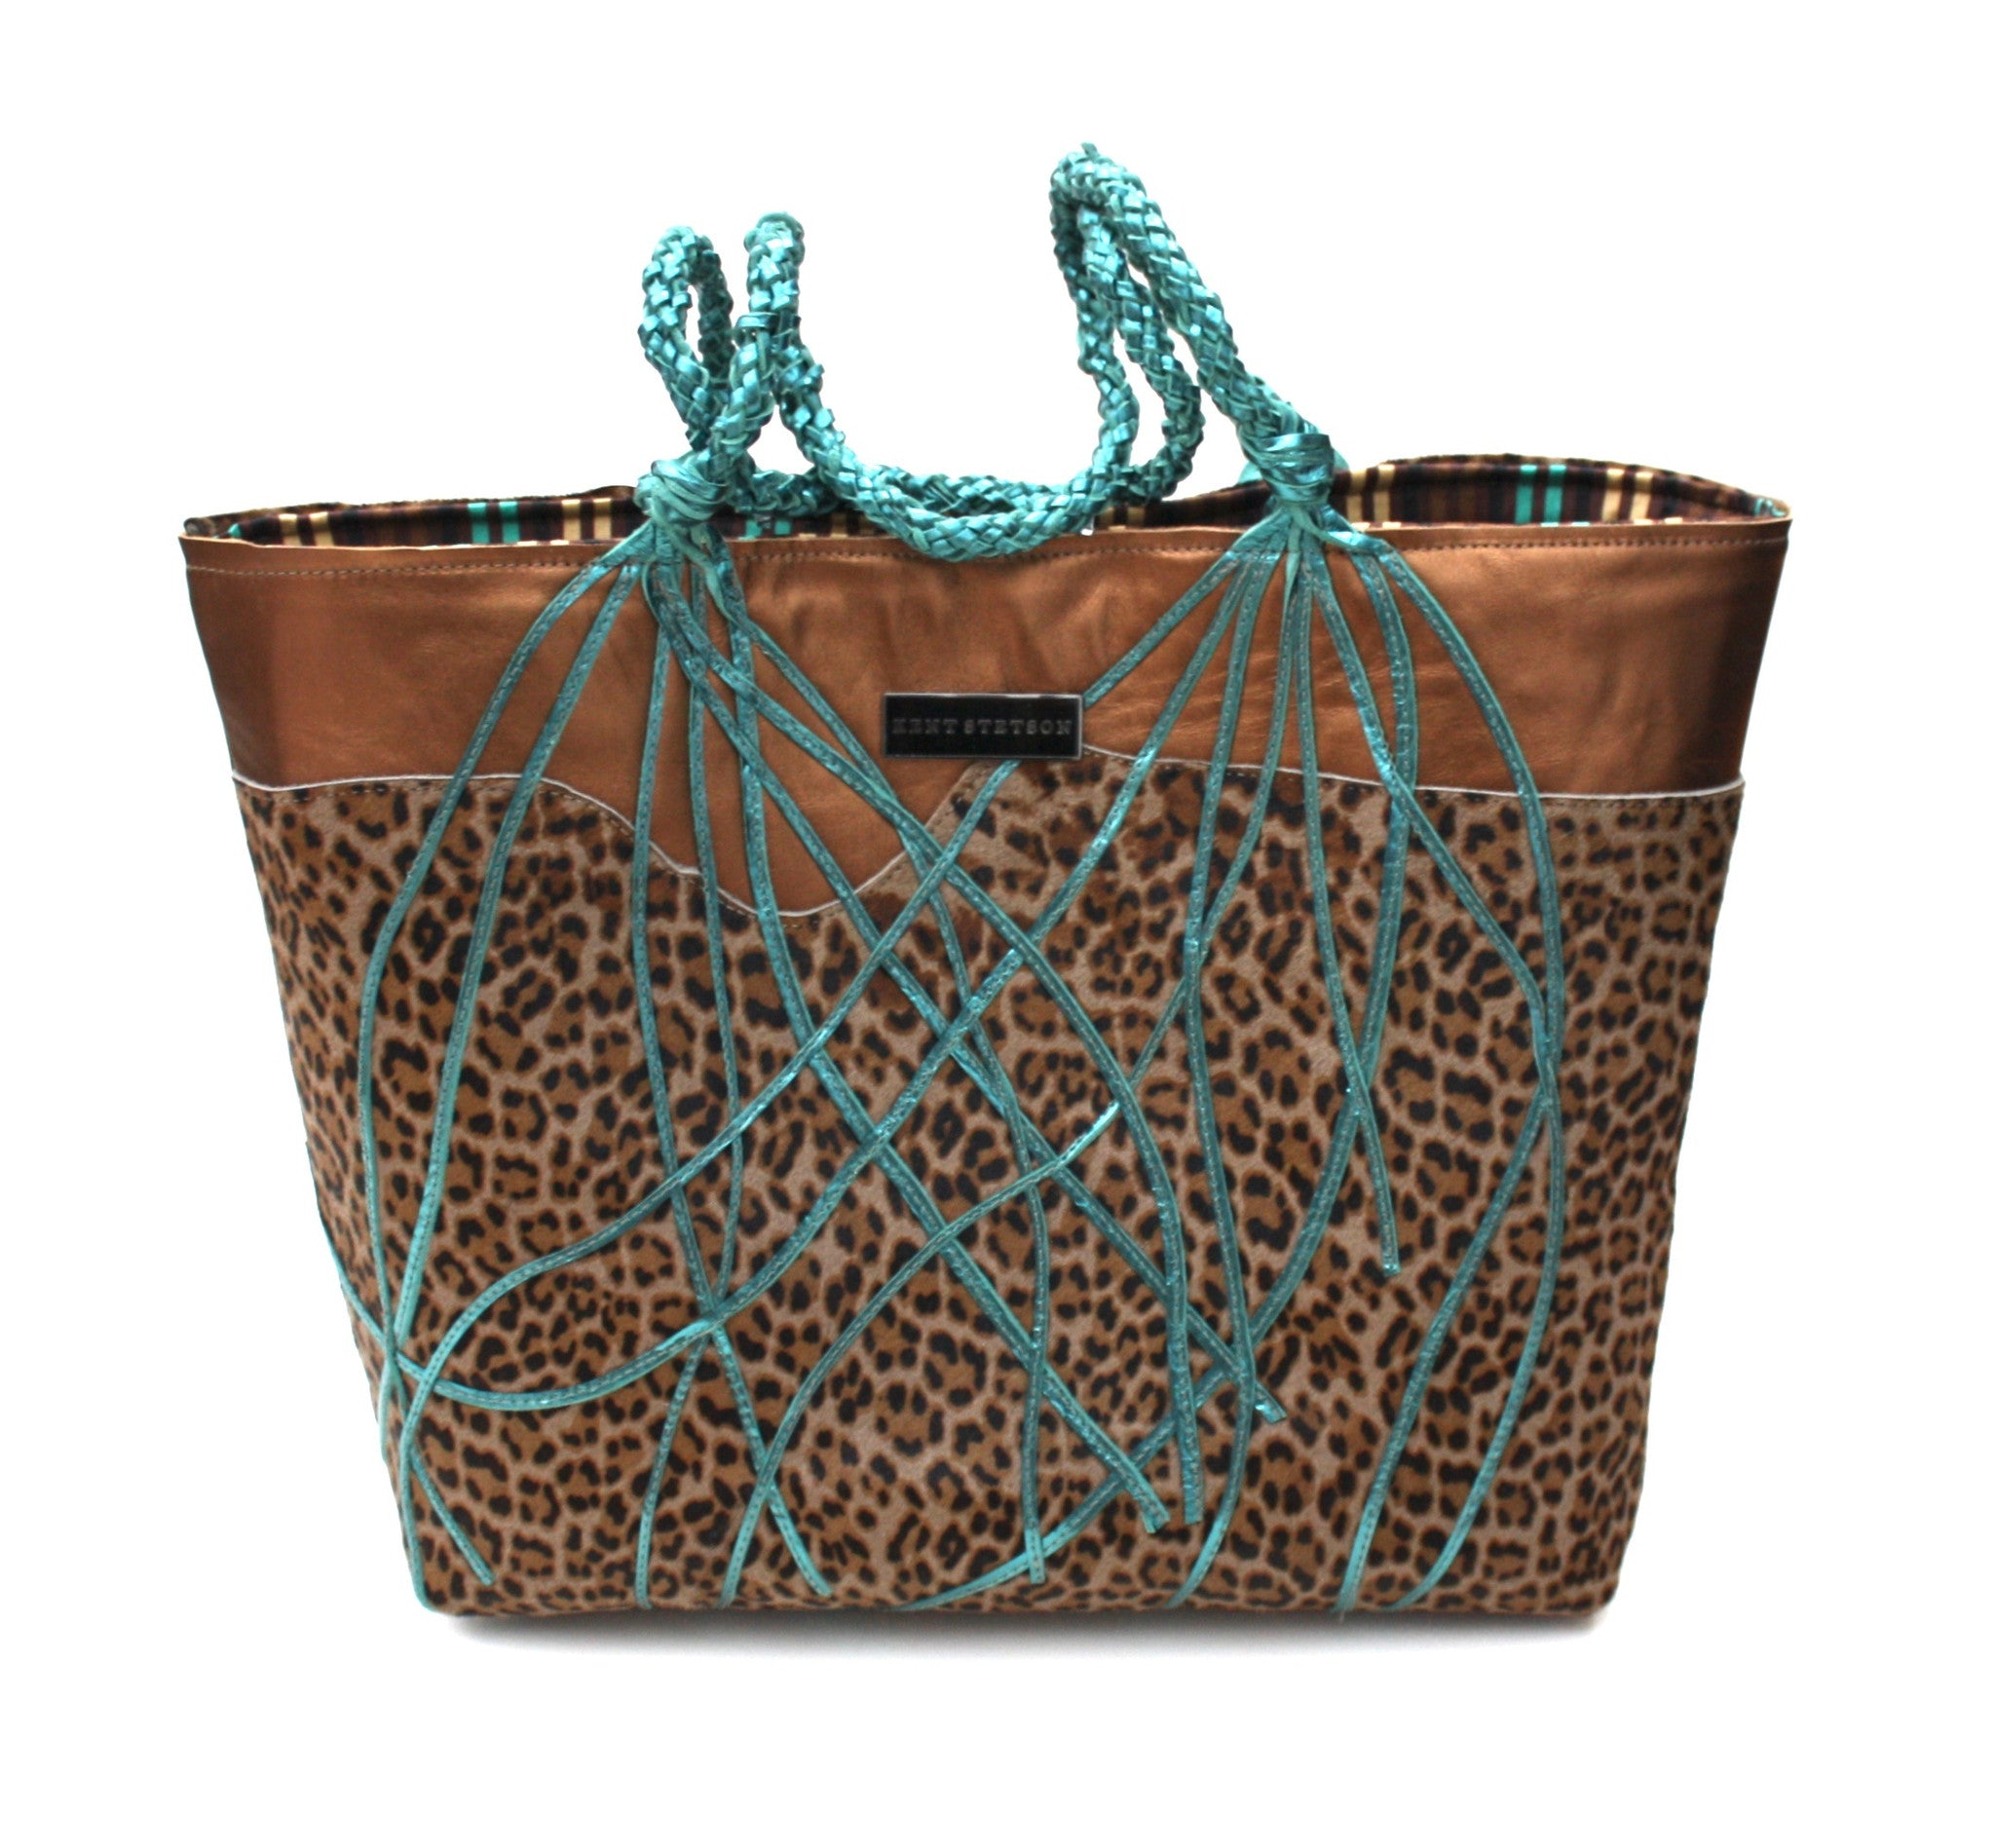 Cheetah & Blue Leather Tote